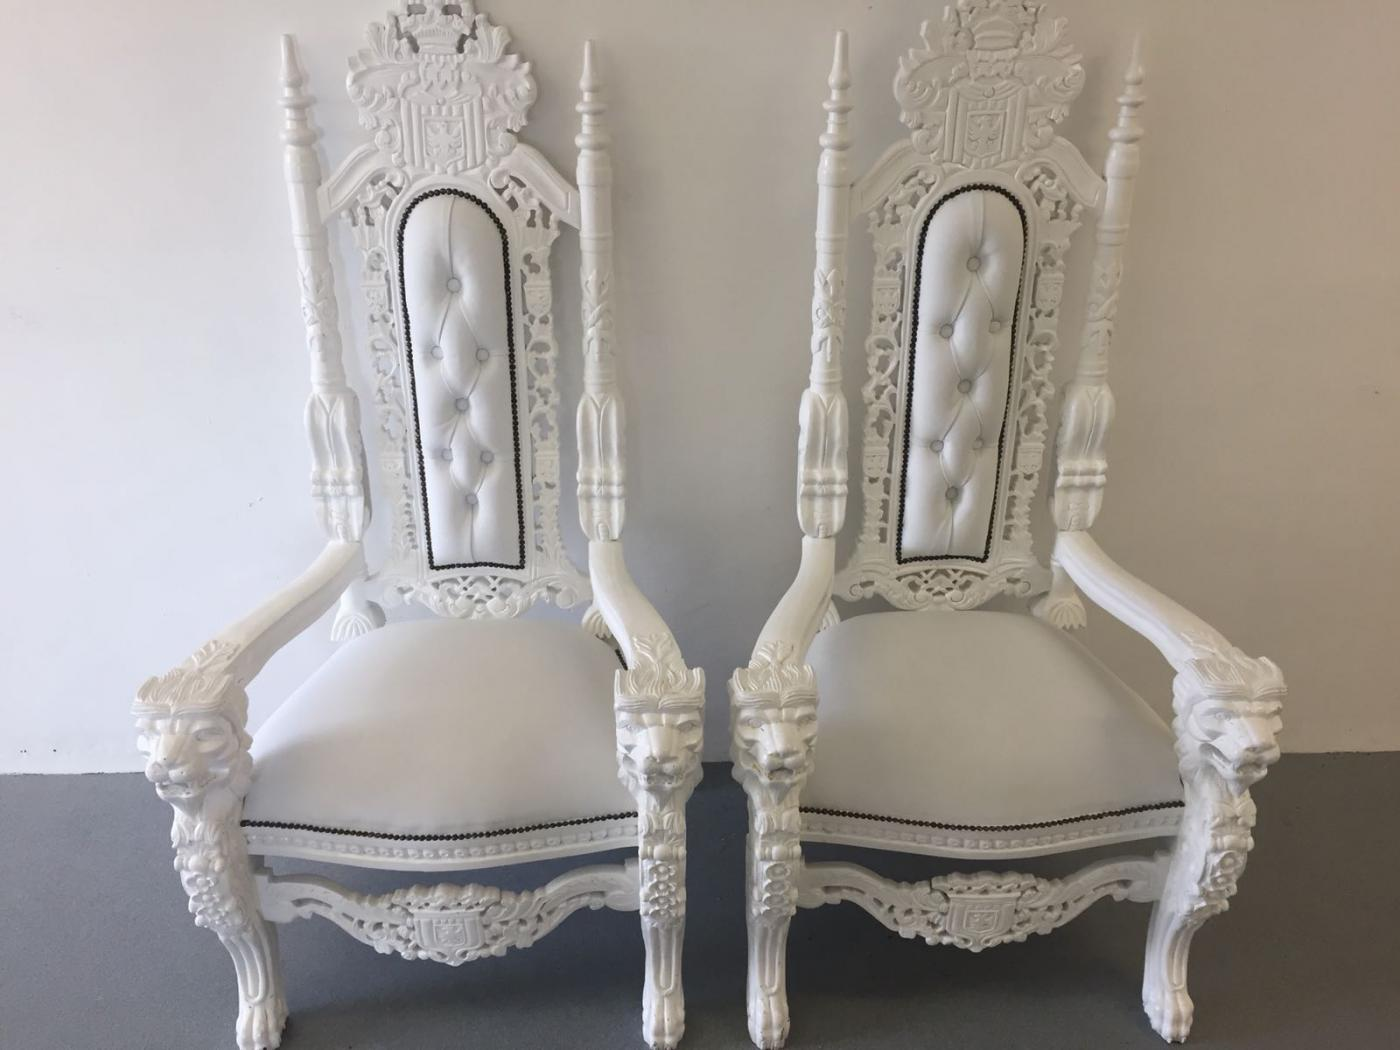 throne chairs for proms norwich